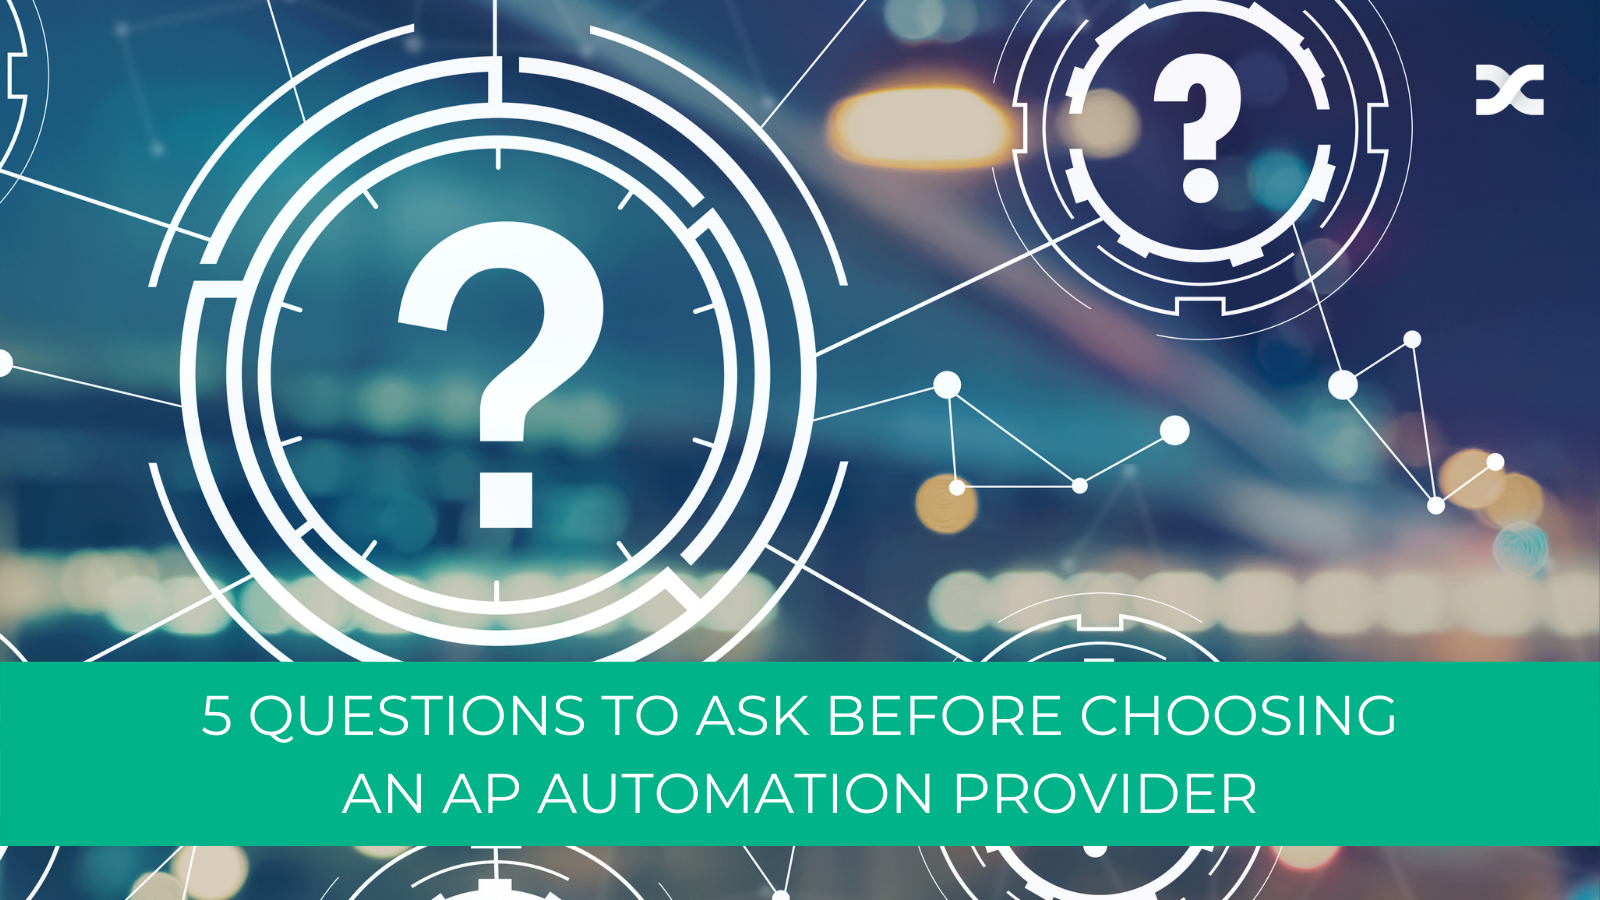 Connected question marks with text reading questions to ask before choosing an AP automation provider